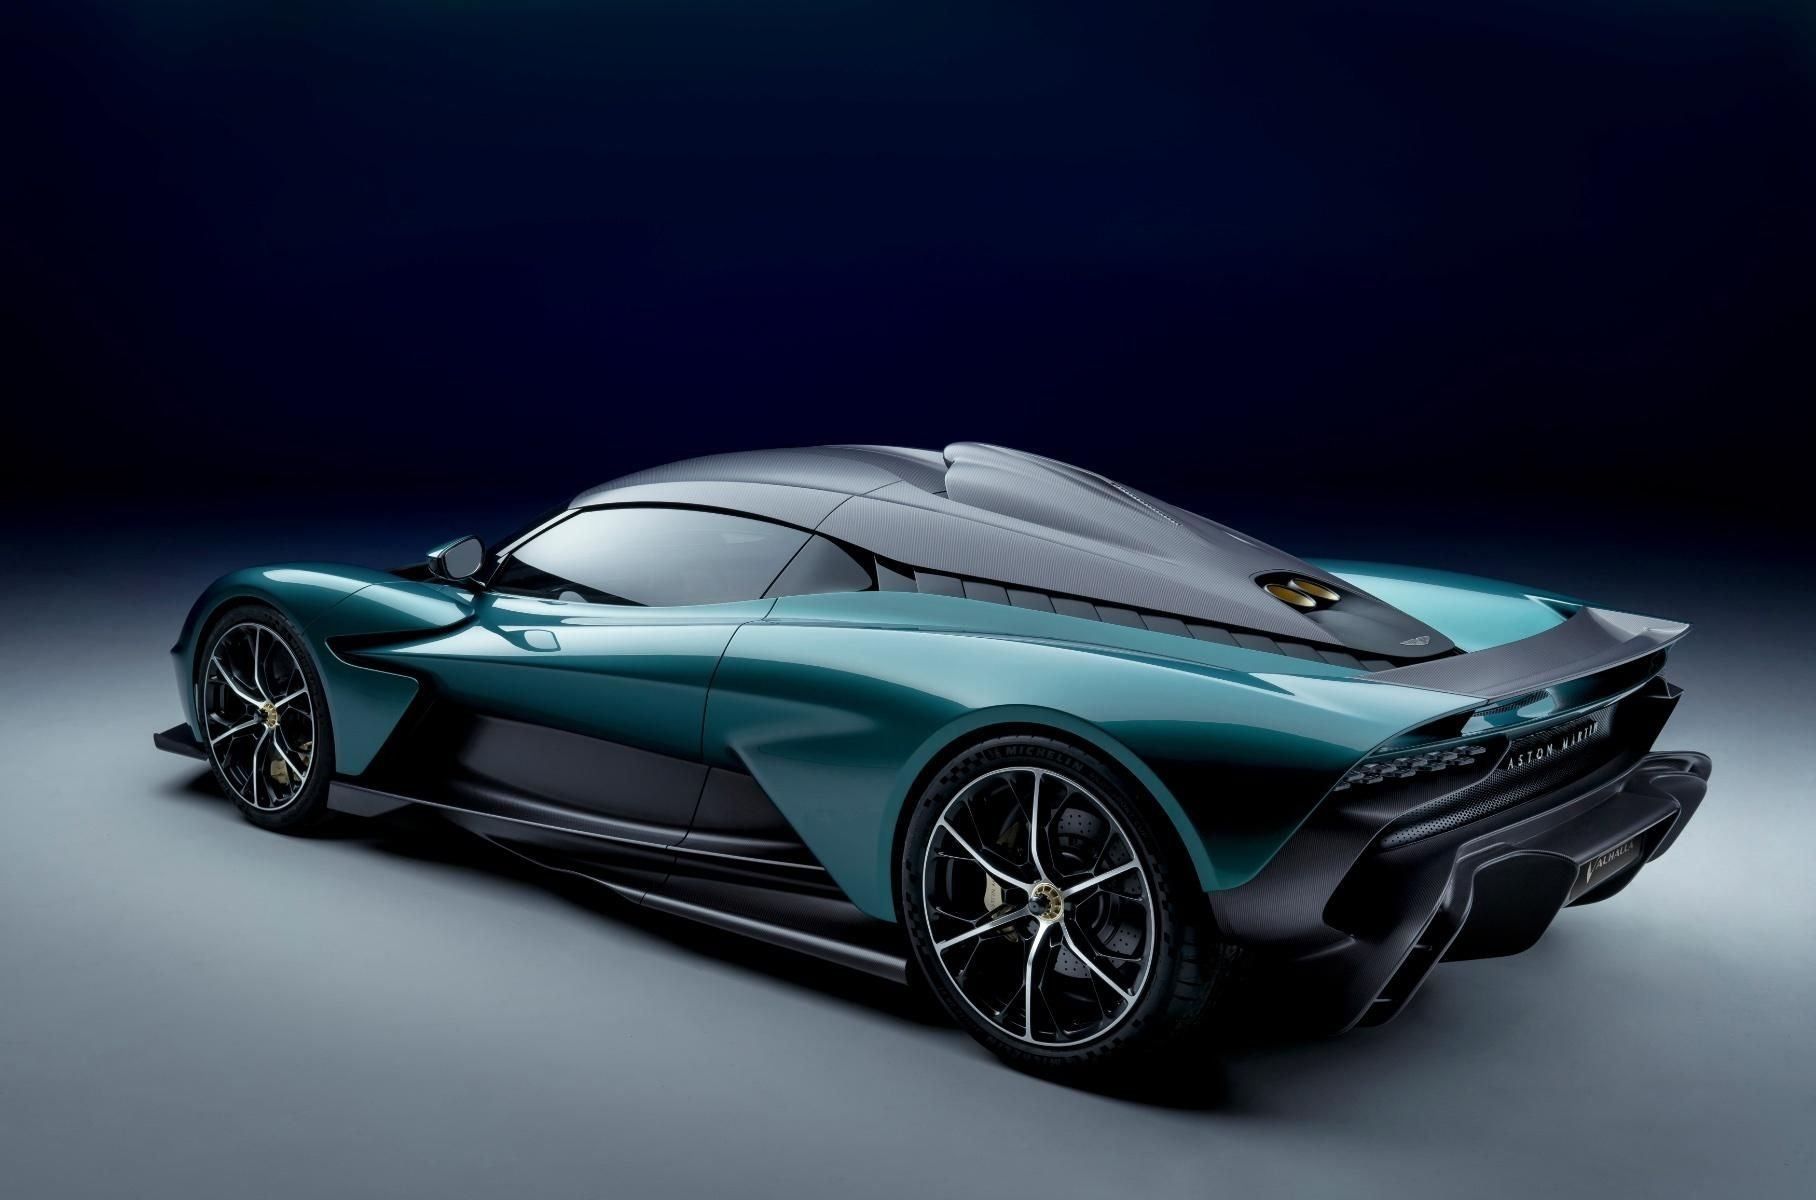 The All-New Aston Martin Valhalla Is The Hybrid Supercar Of Your Dreams